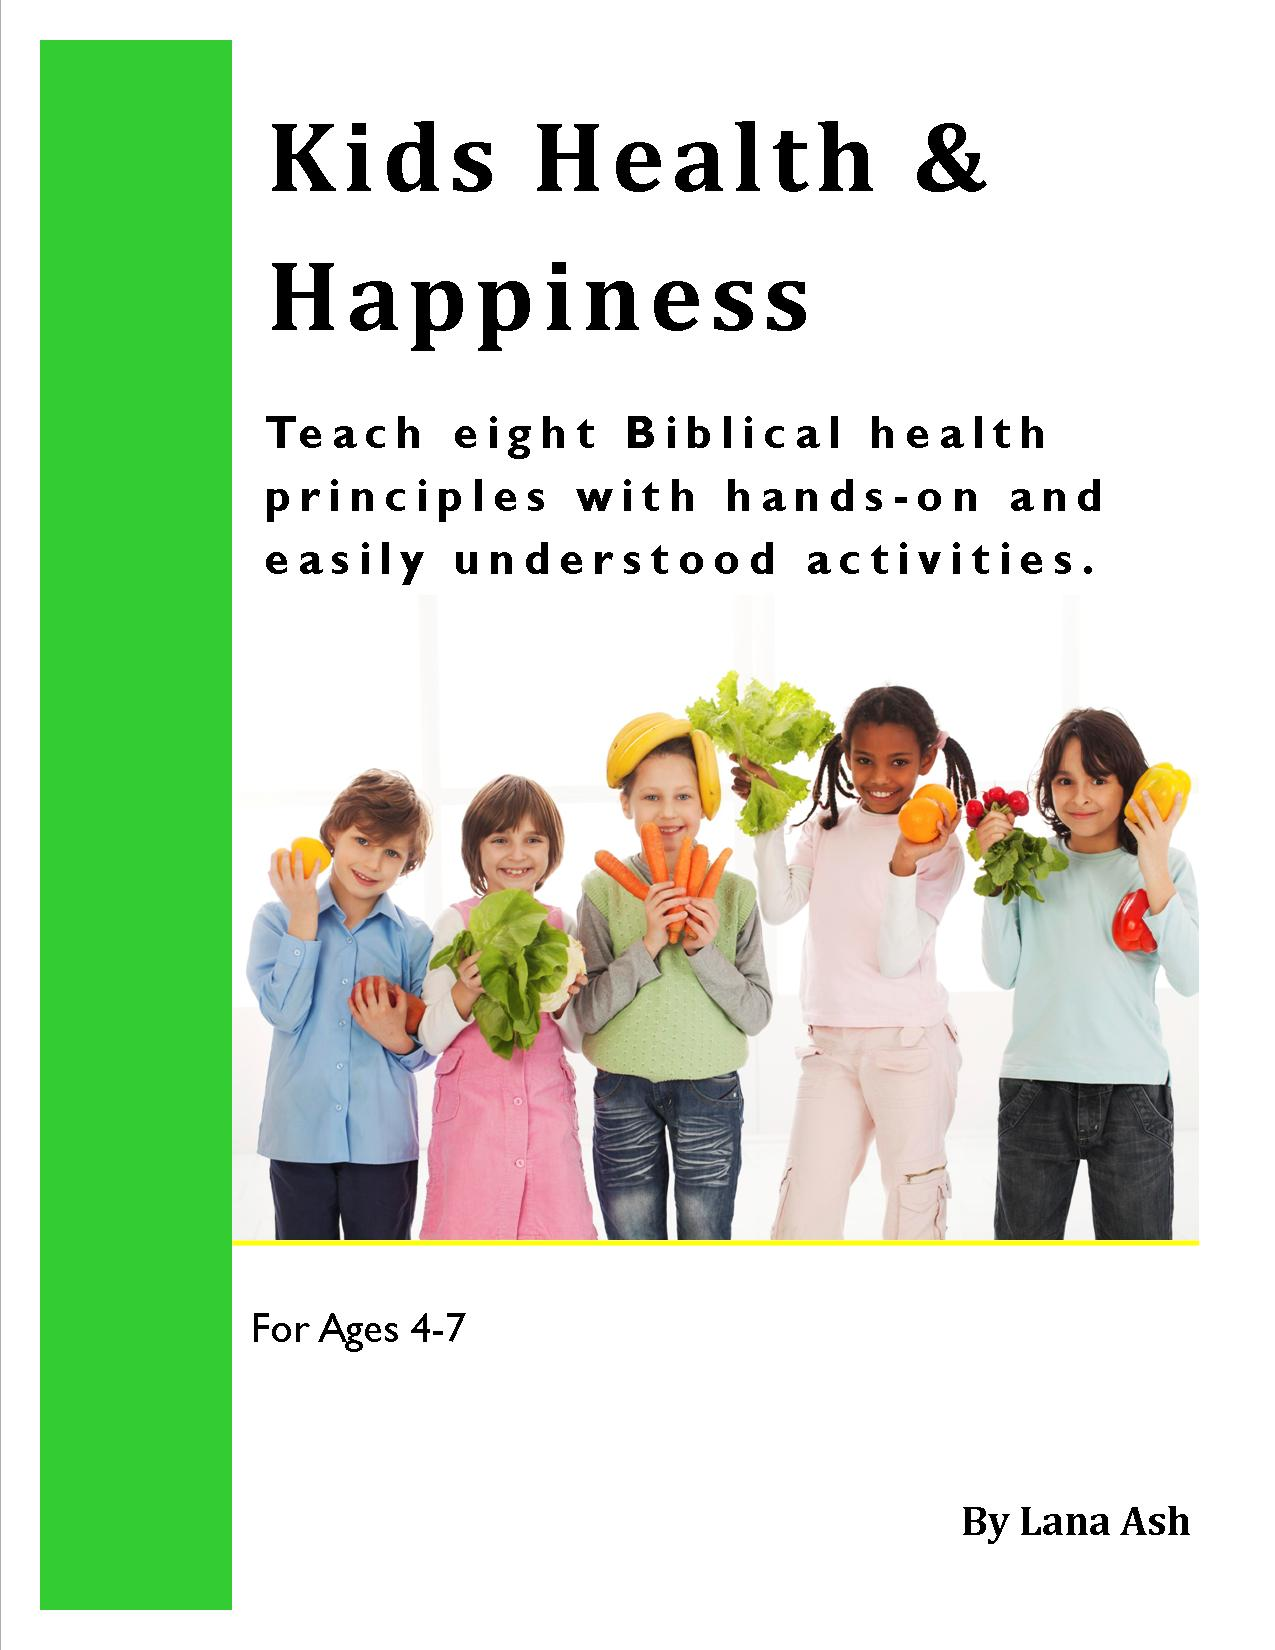 Kids Health & Happiness Book